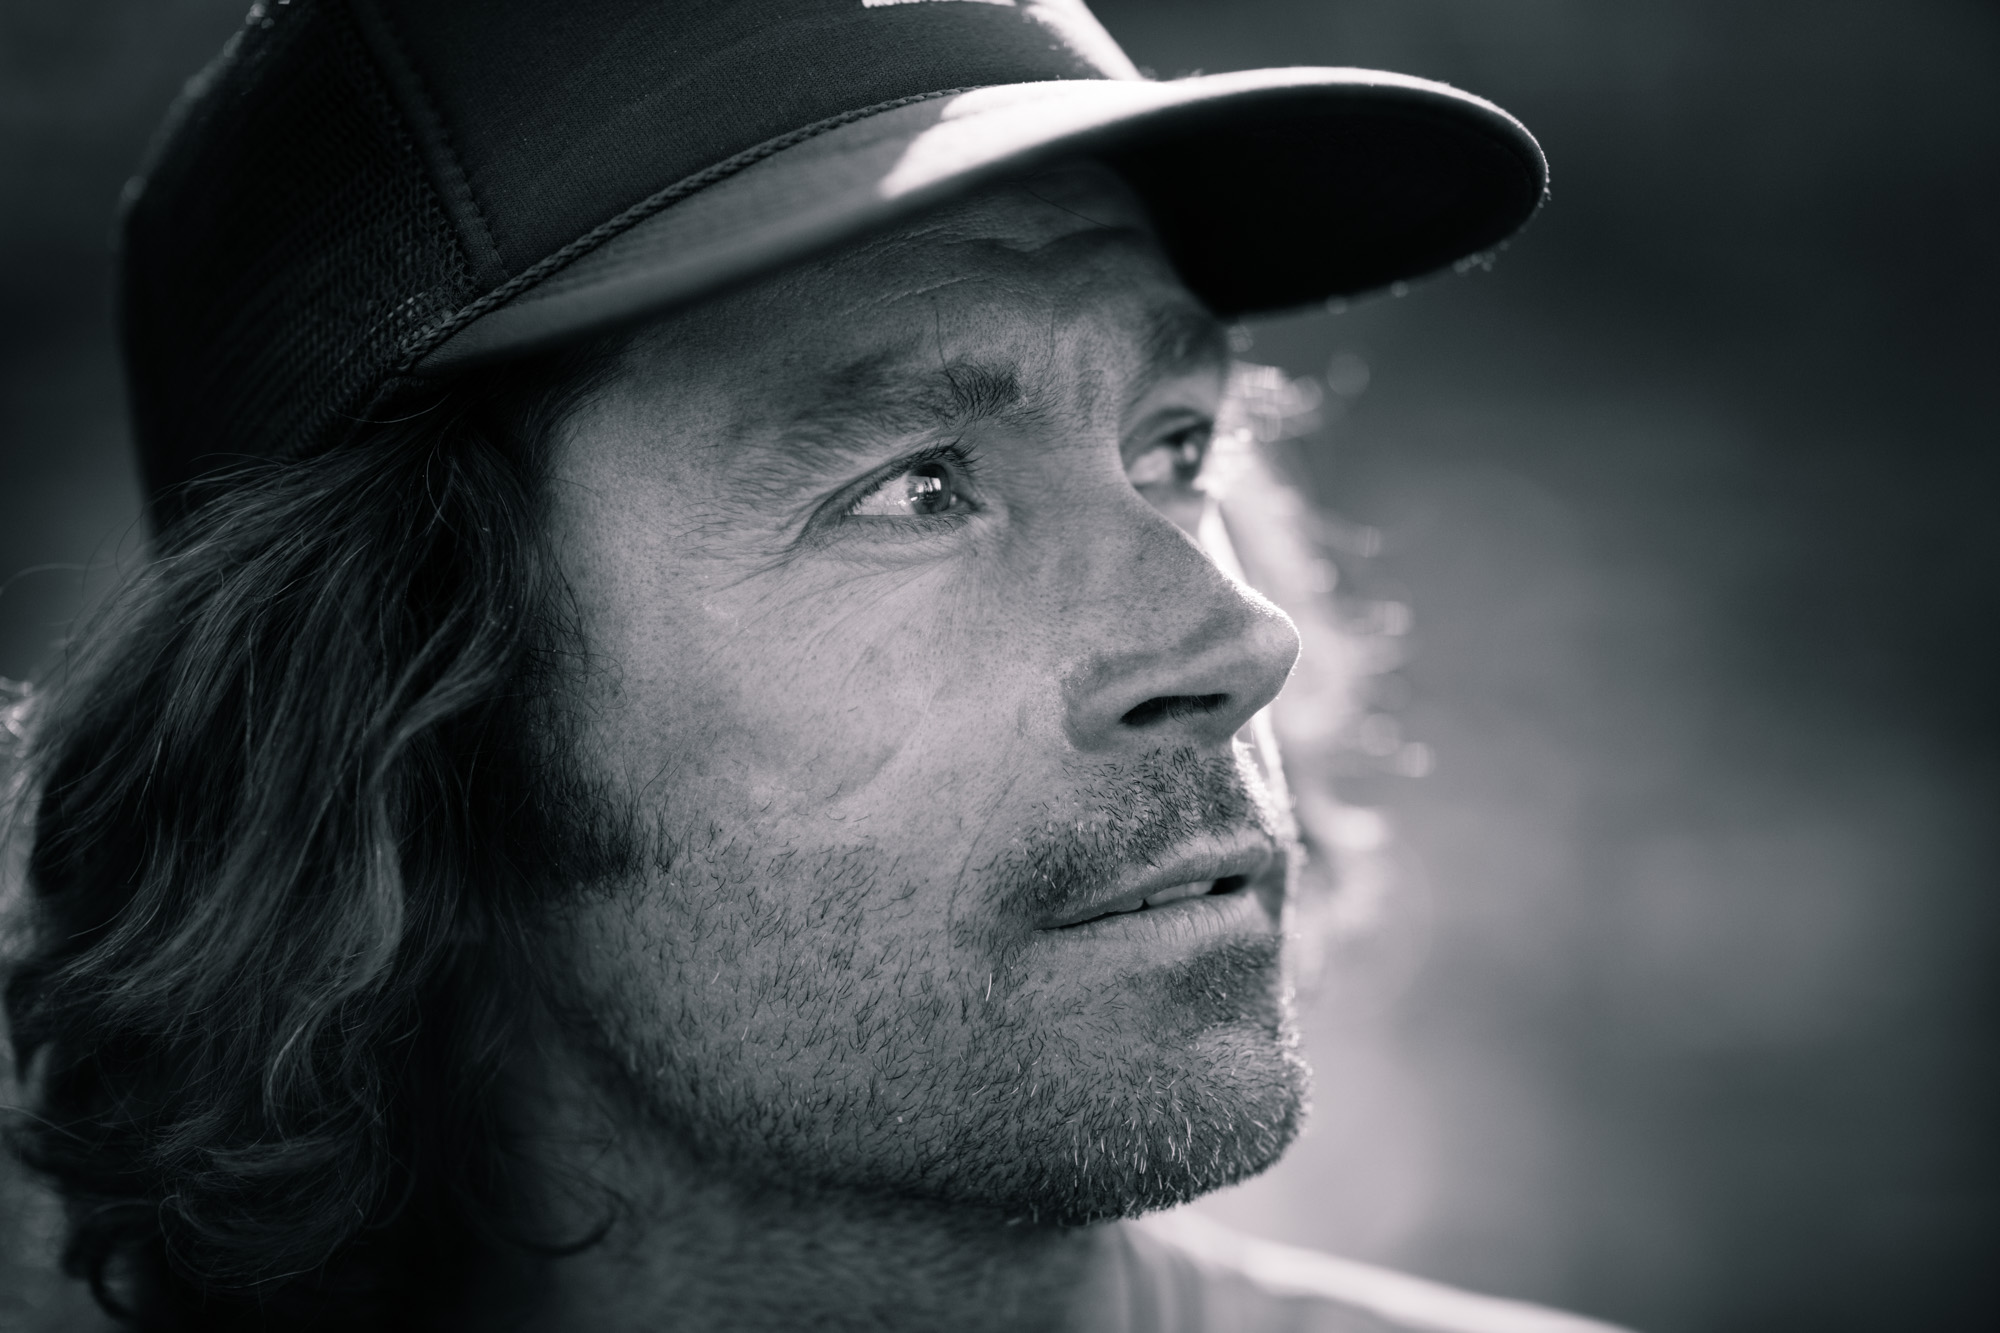 jeremy-jones-snowboarder-portrait-head-shot